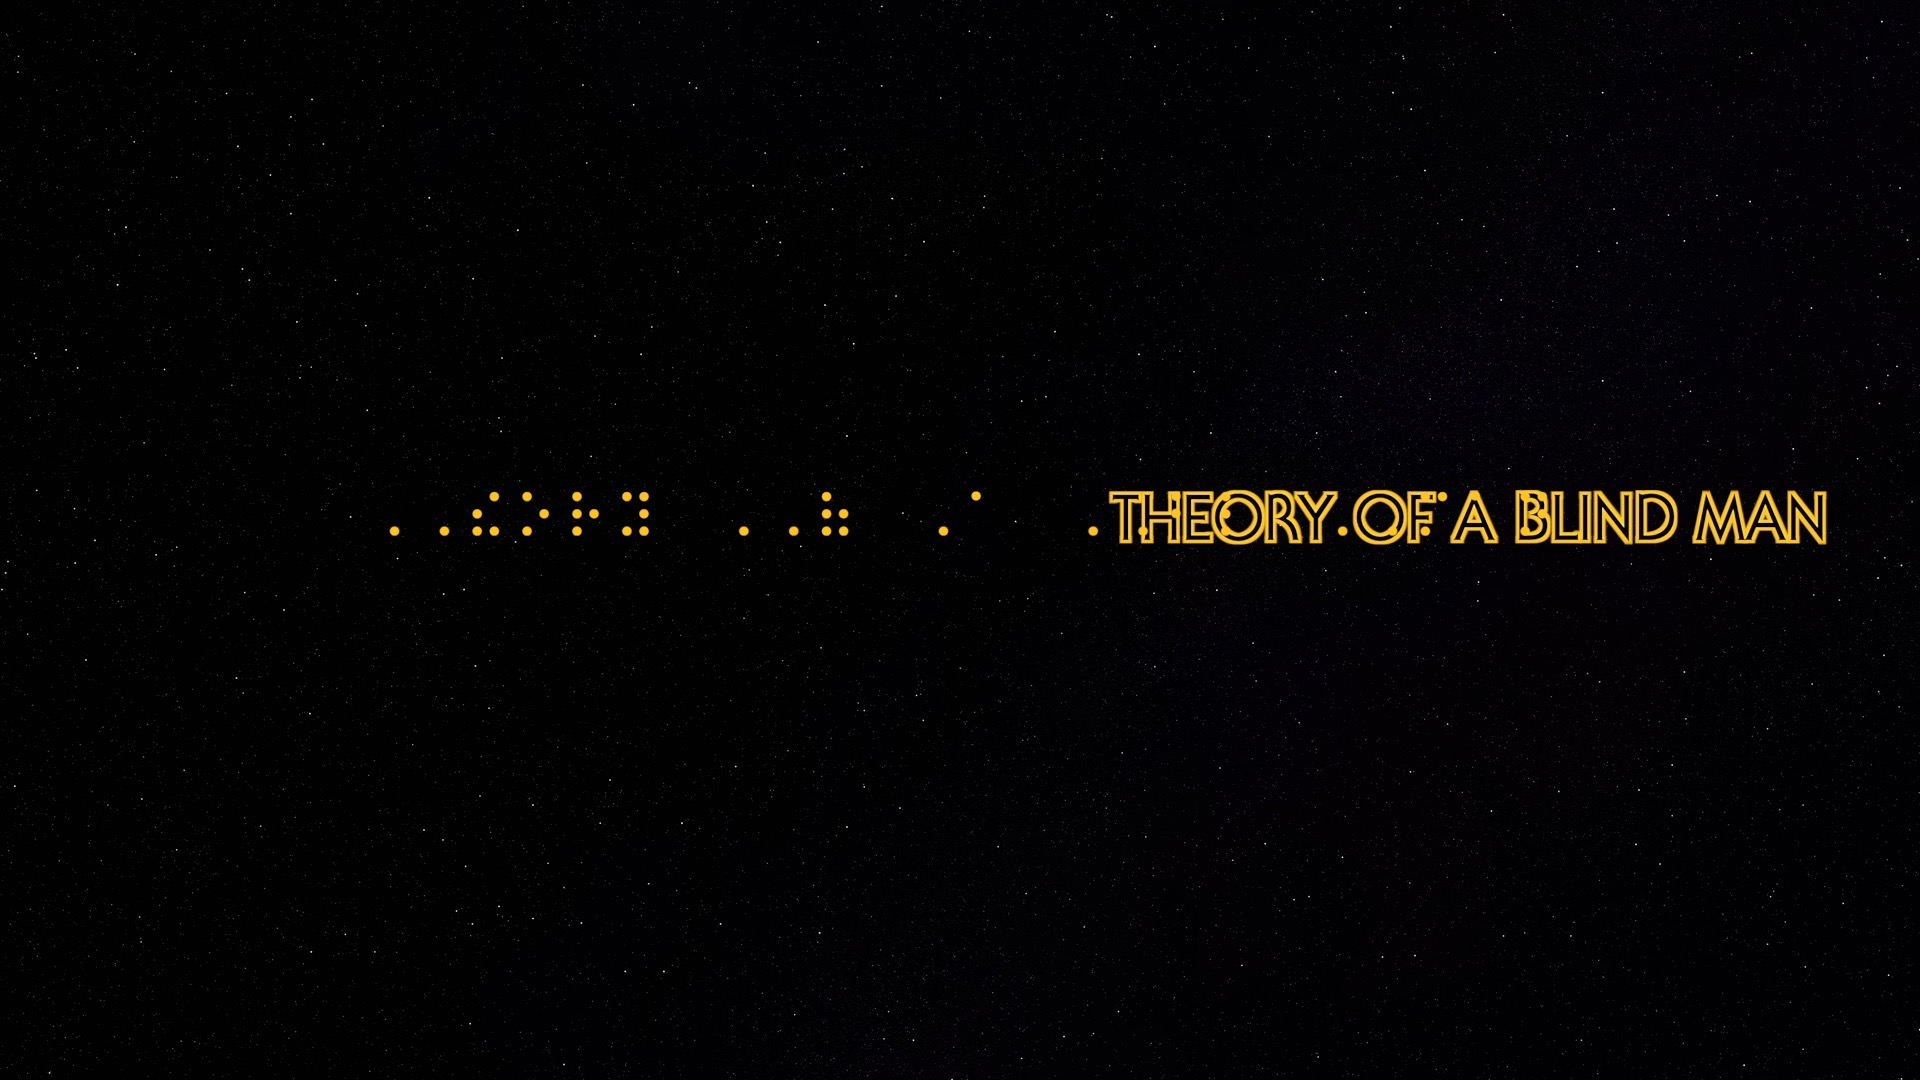 Theory Of A Blind Man in the star wars font on a starry background. Golden Rod 1 font color with Braille font below.